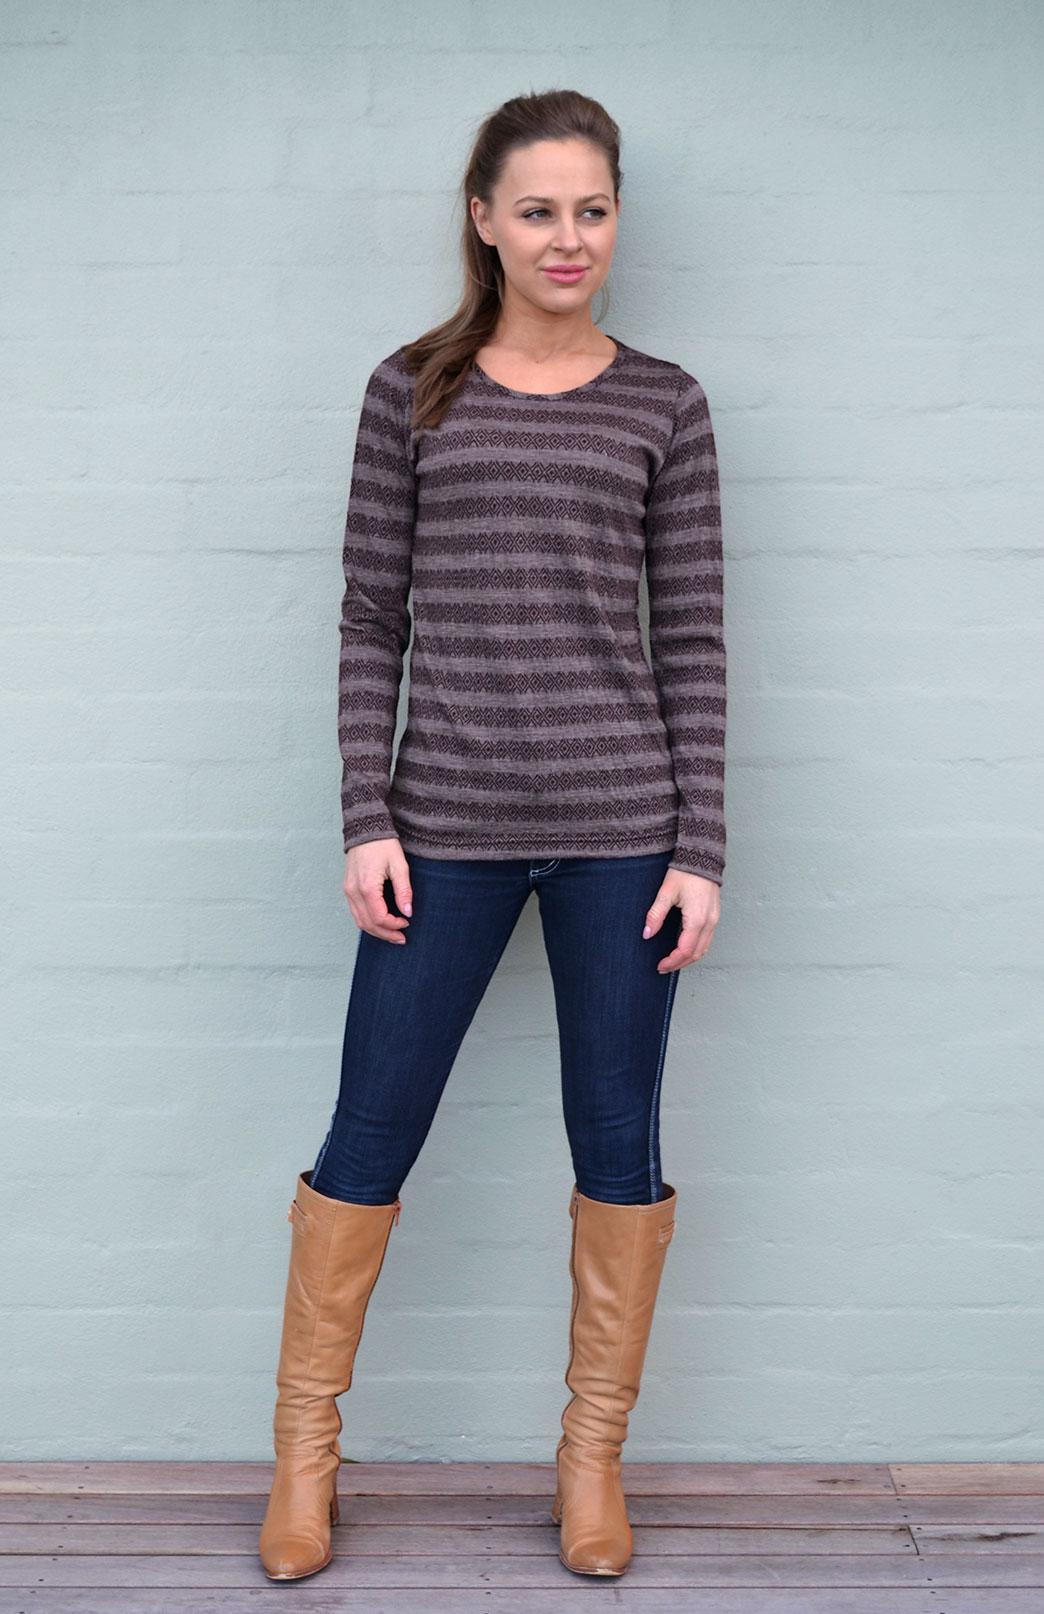 Round Neck Top - Patterned - Women's Brown Coffee Aztec Patterned Merino Wool Long Sleeved Thermal Fashion Top - Smitten Merino Tasmania Australia